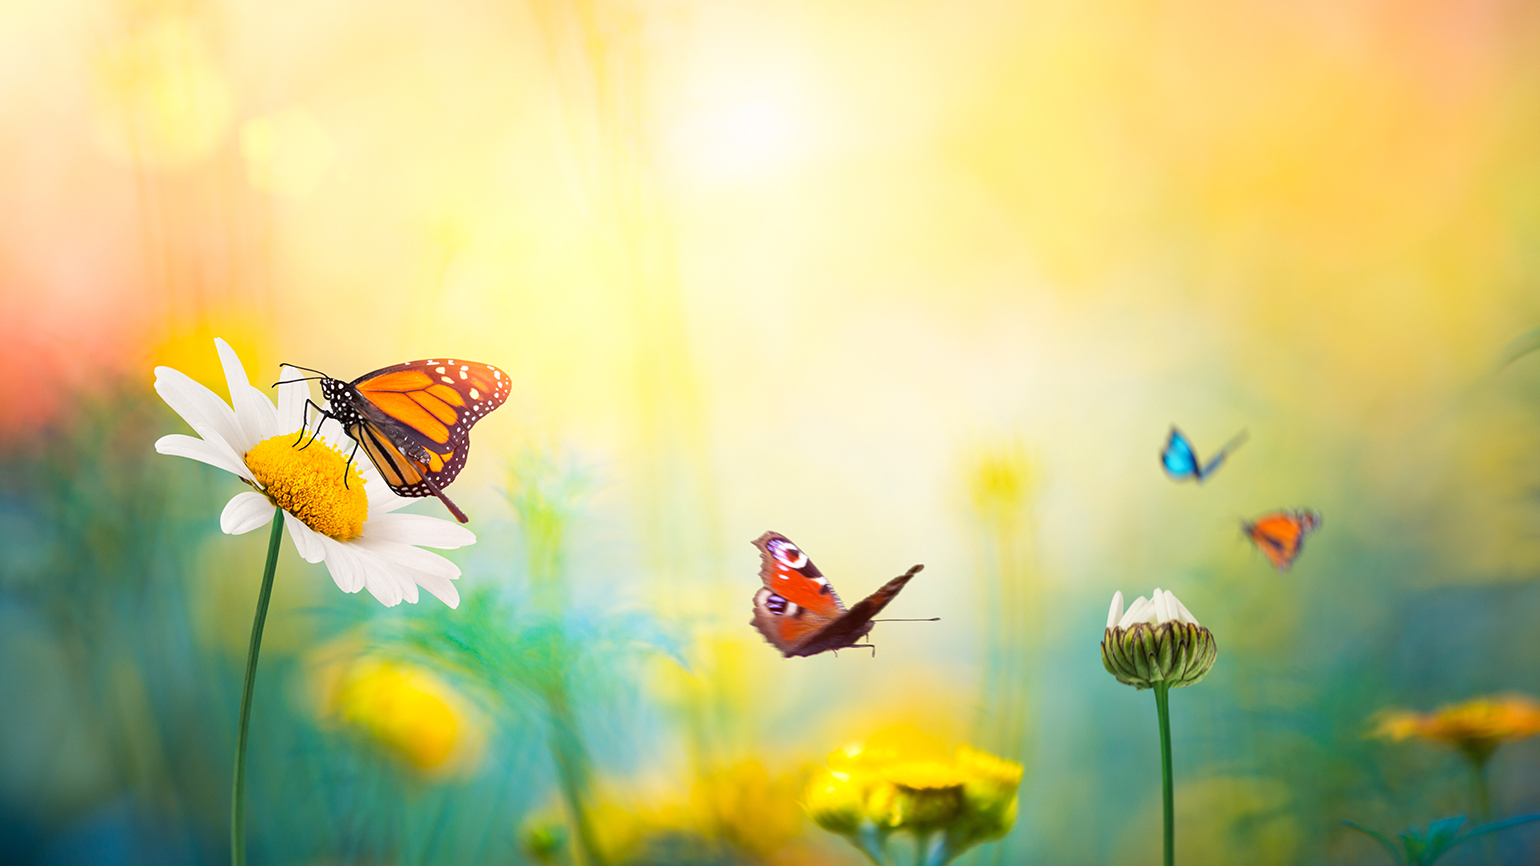 Butterflies and flowers on a spring day